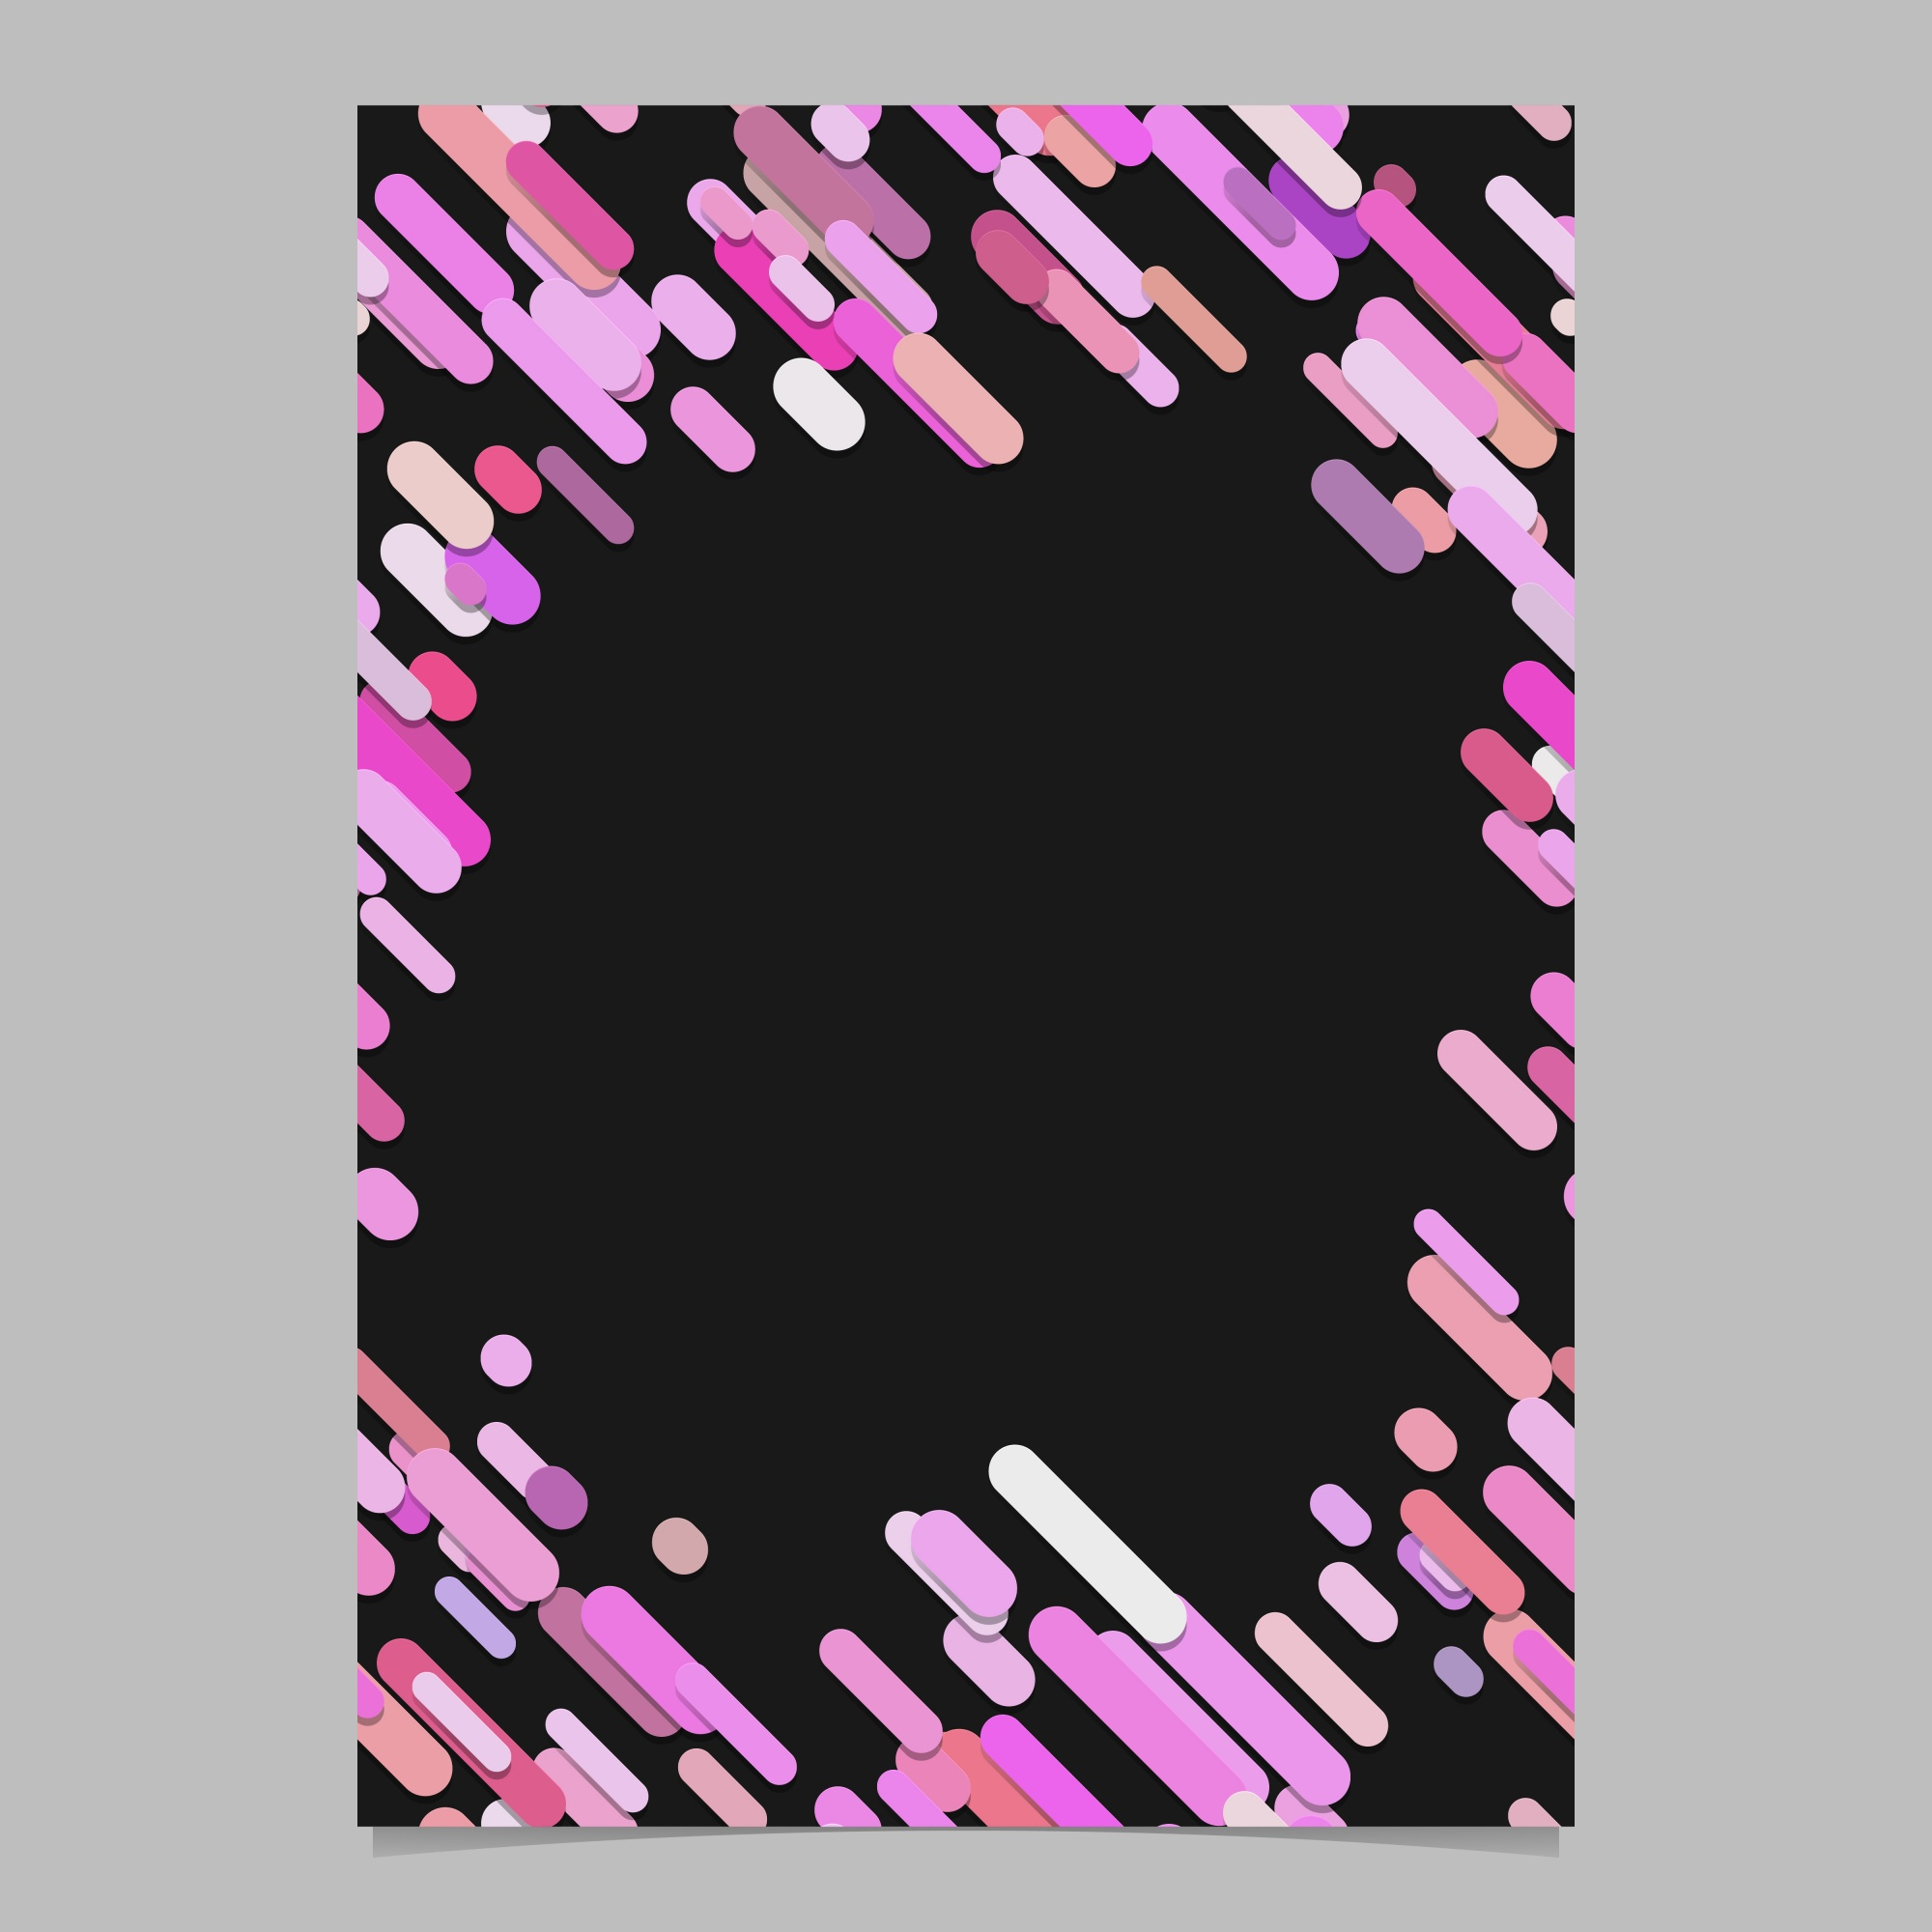 Abstract chaotic rounded diagonal stripe pattern brochure template - blank vector flyer background design from stripes in pink tones